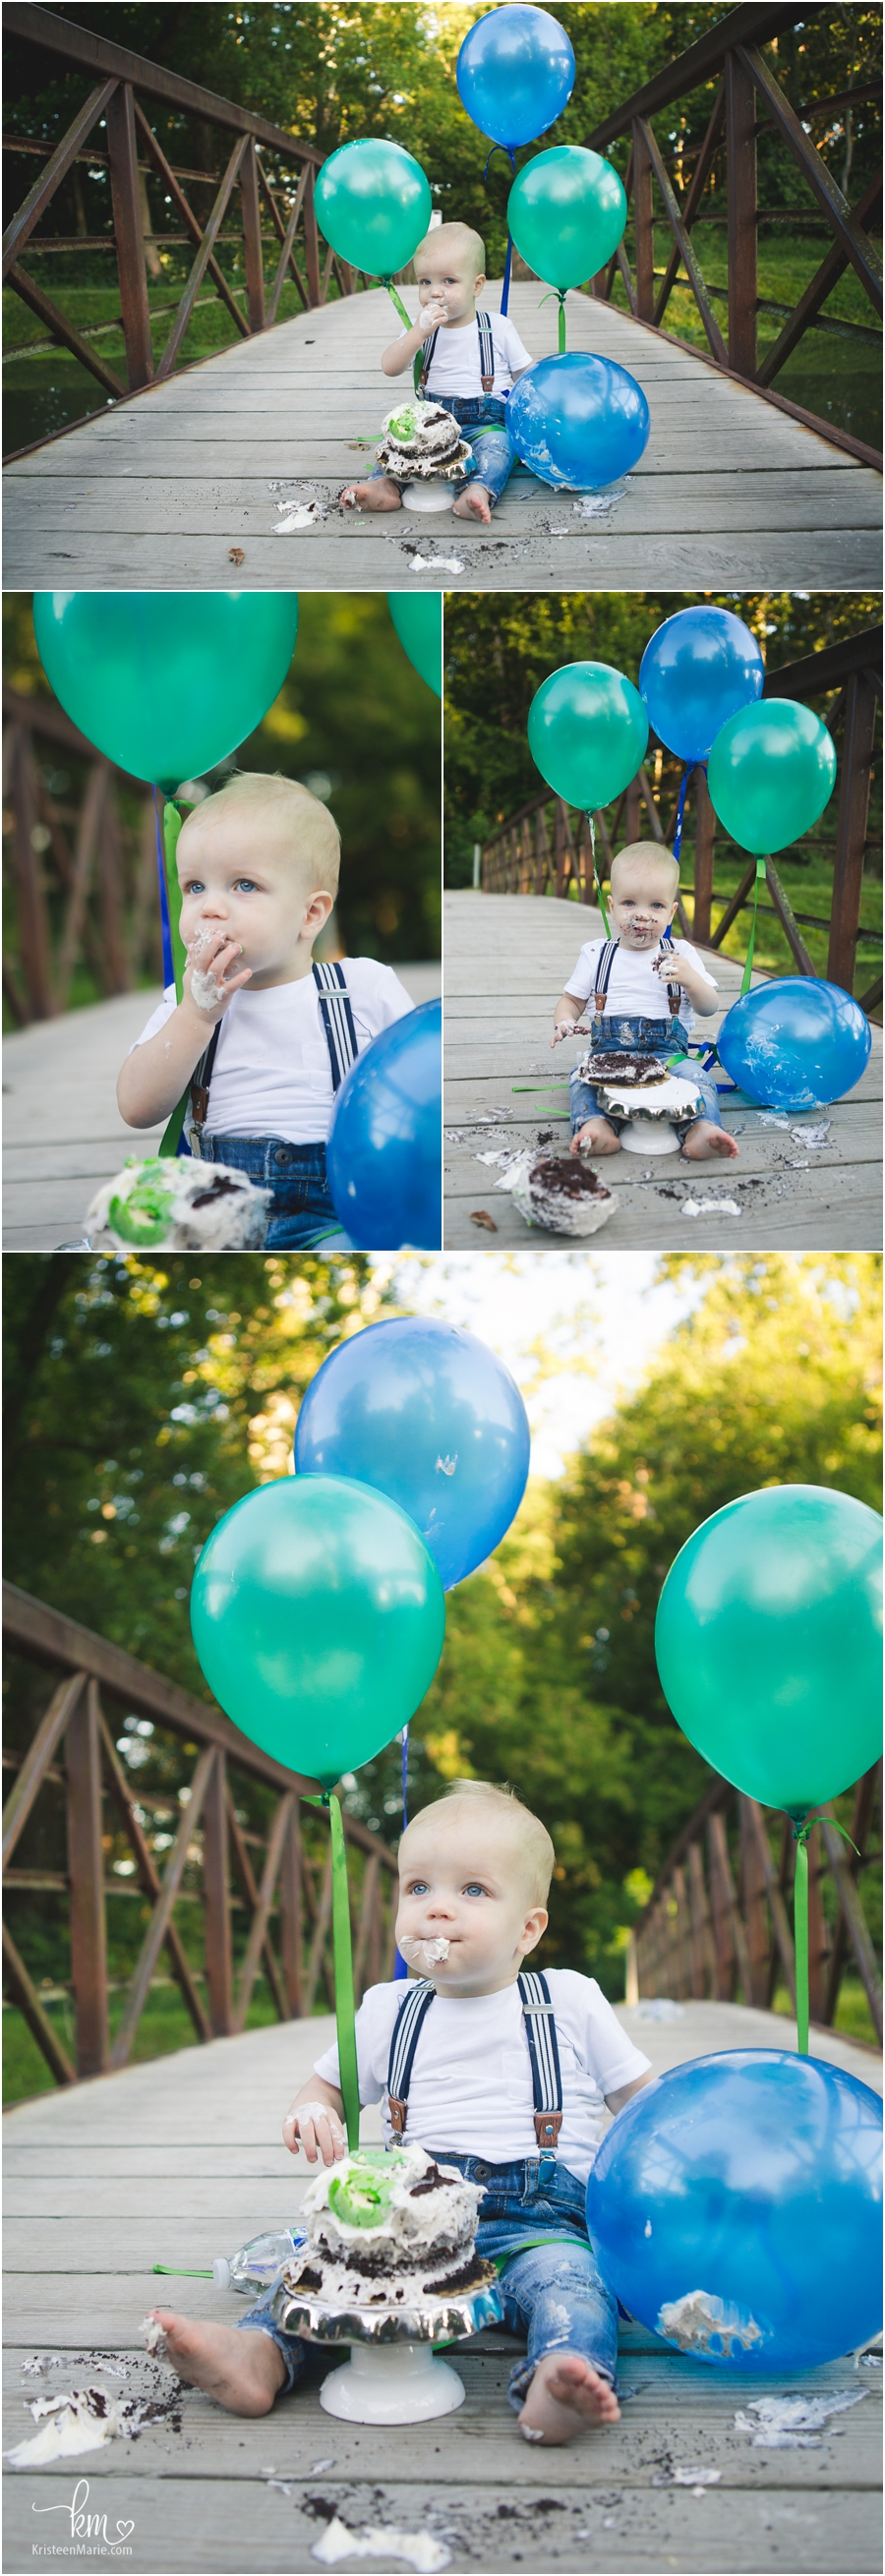 outdoor cake smash session on a bridge - teal and blue theme for boy